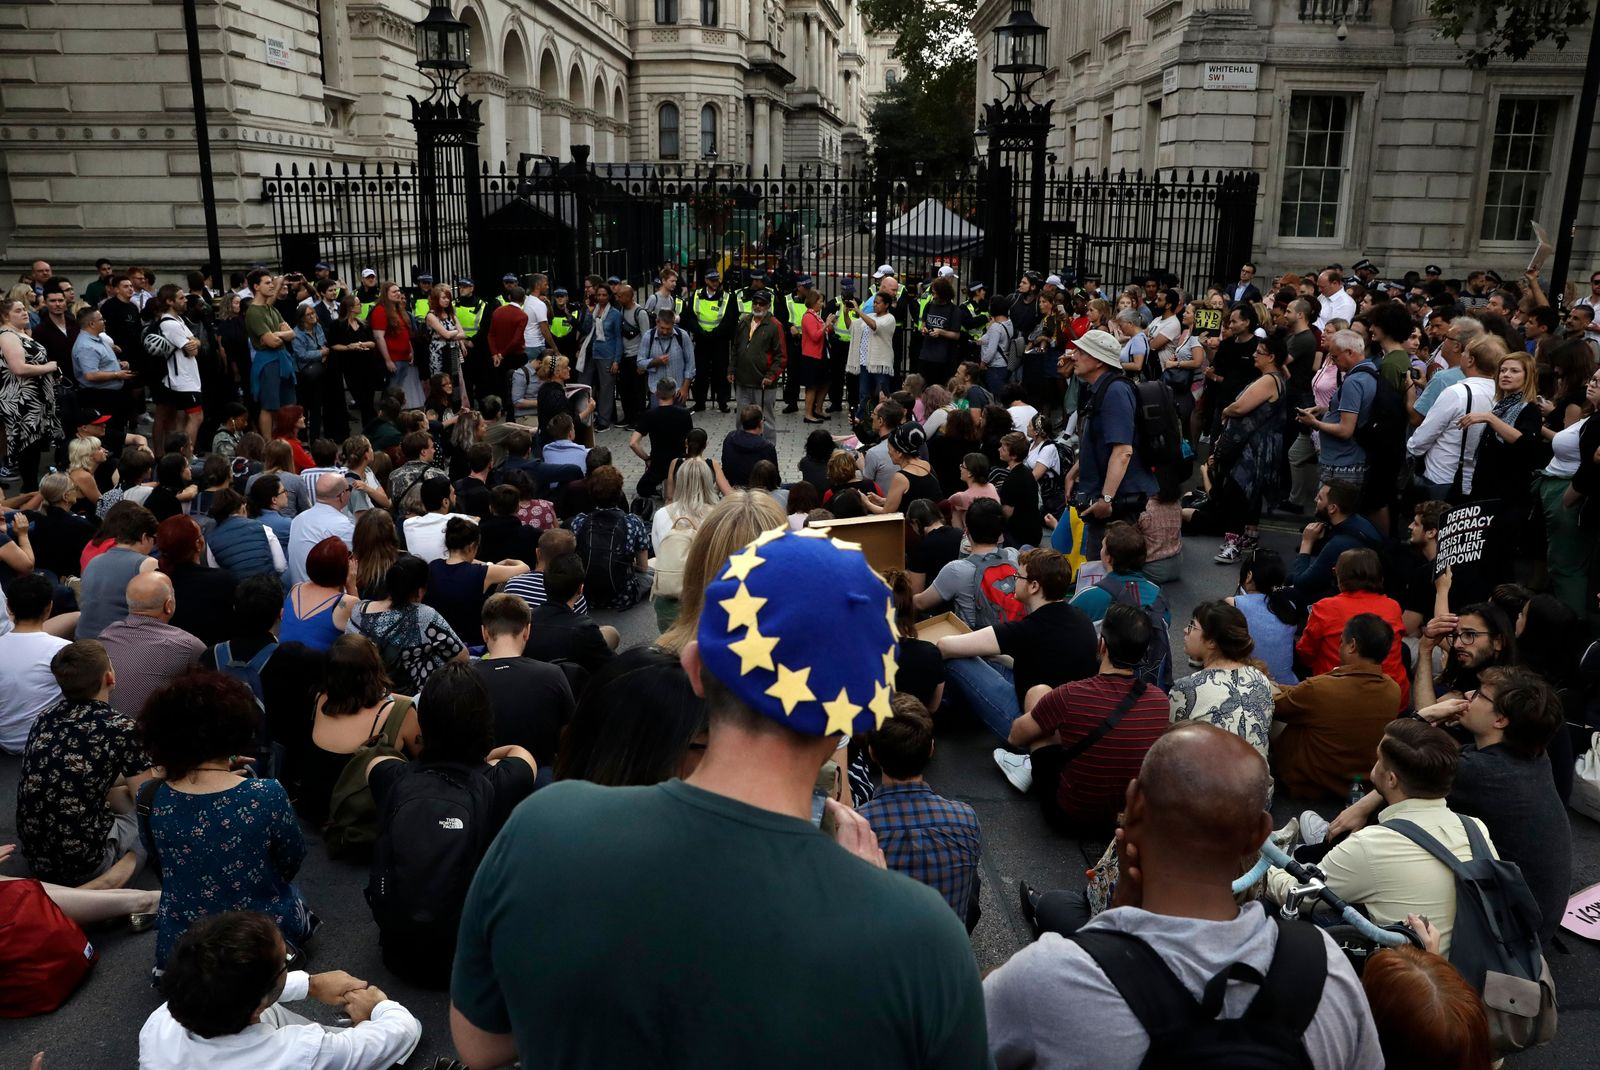 Anti-Brexit supporters gather outside the Prime Minister's residence 10 Downing Street in London, Wednesday, Aug. 28, 2019. (AP Photo/Matt Dunham)